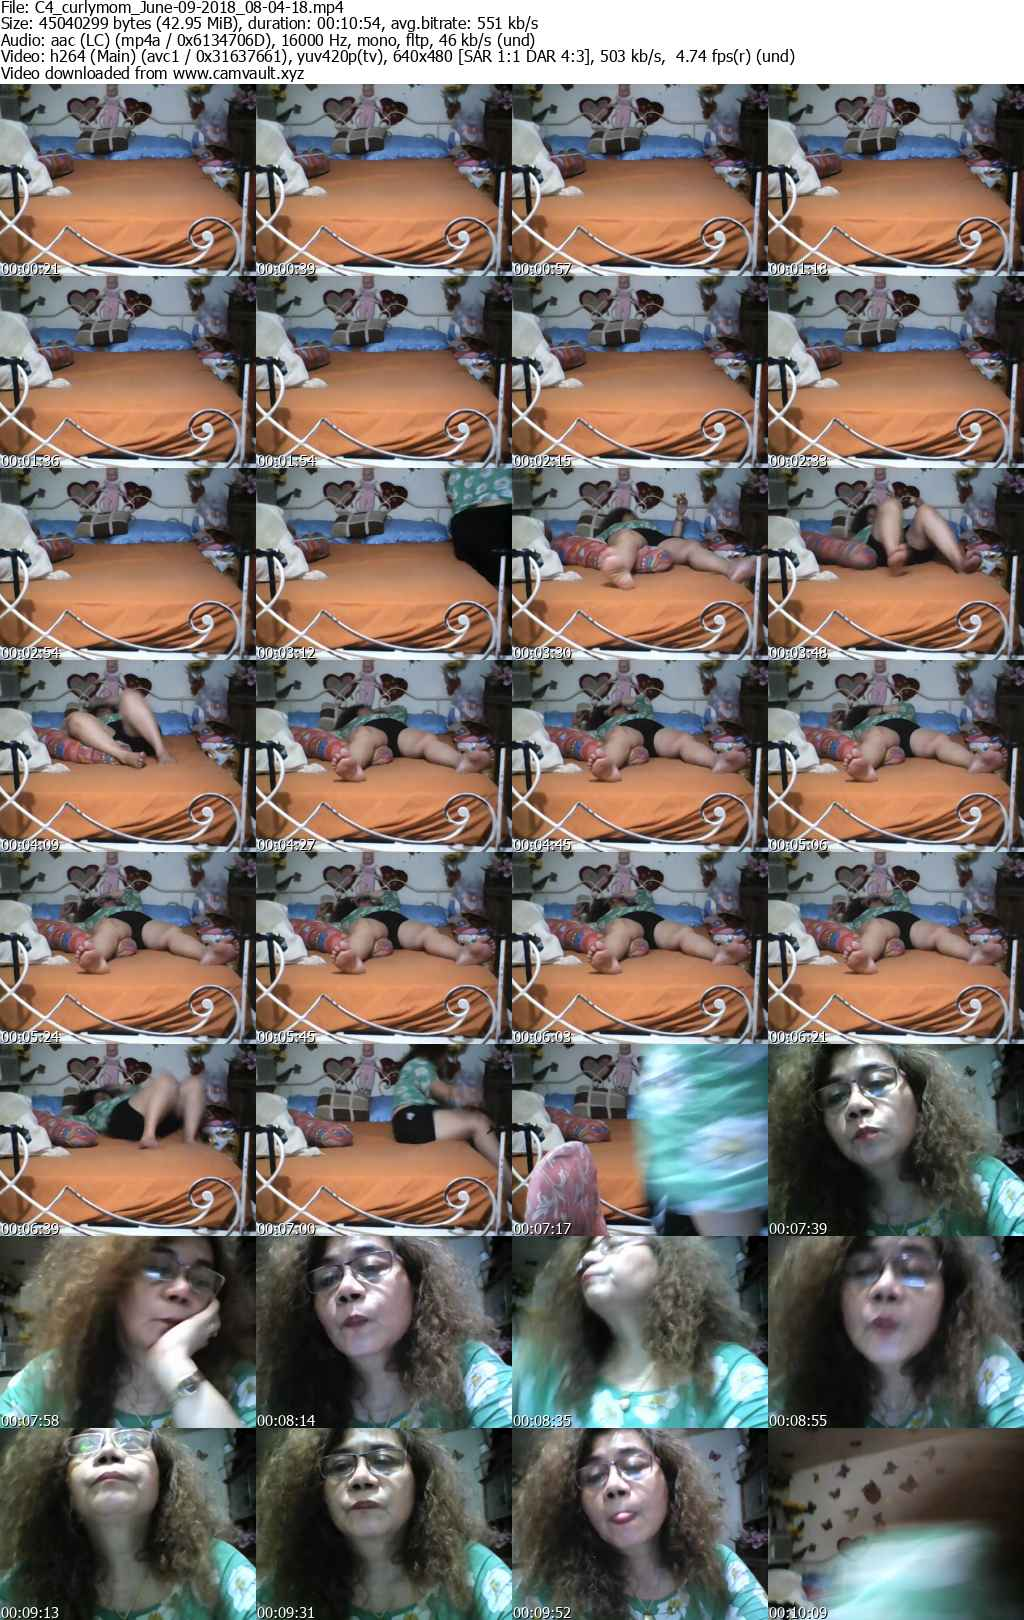 Video preview for model curlymom